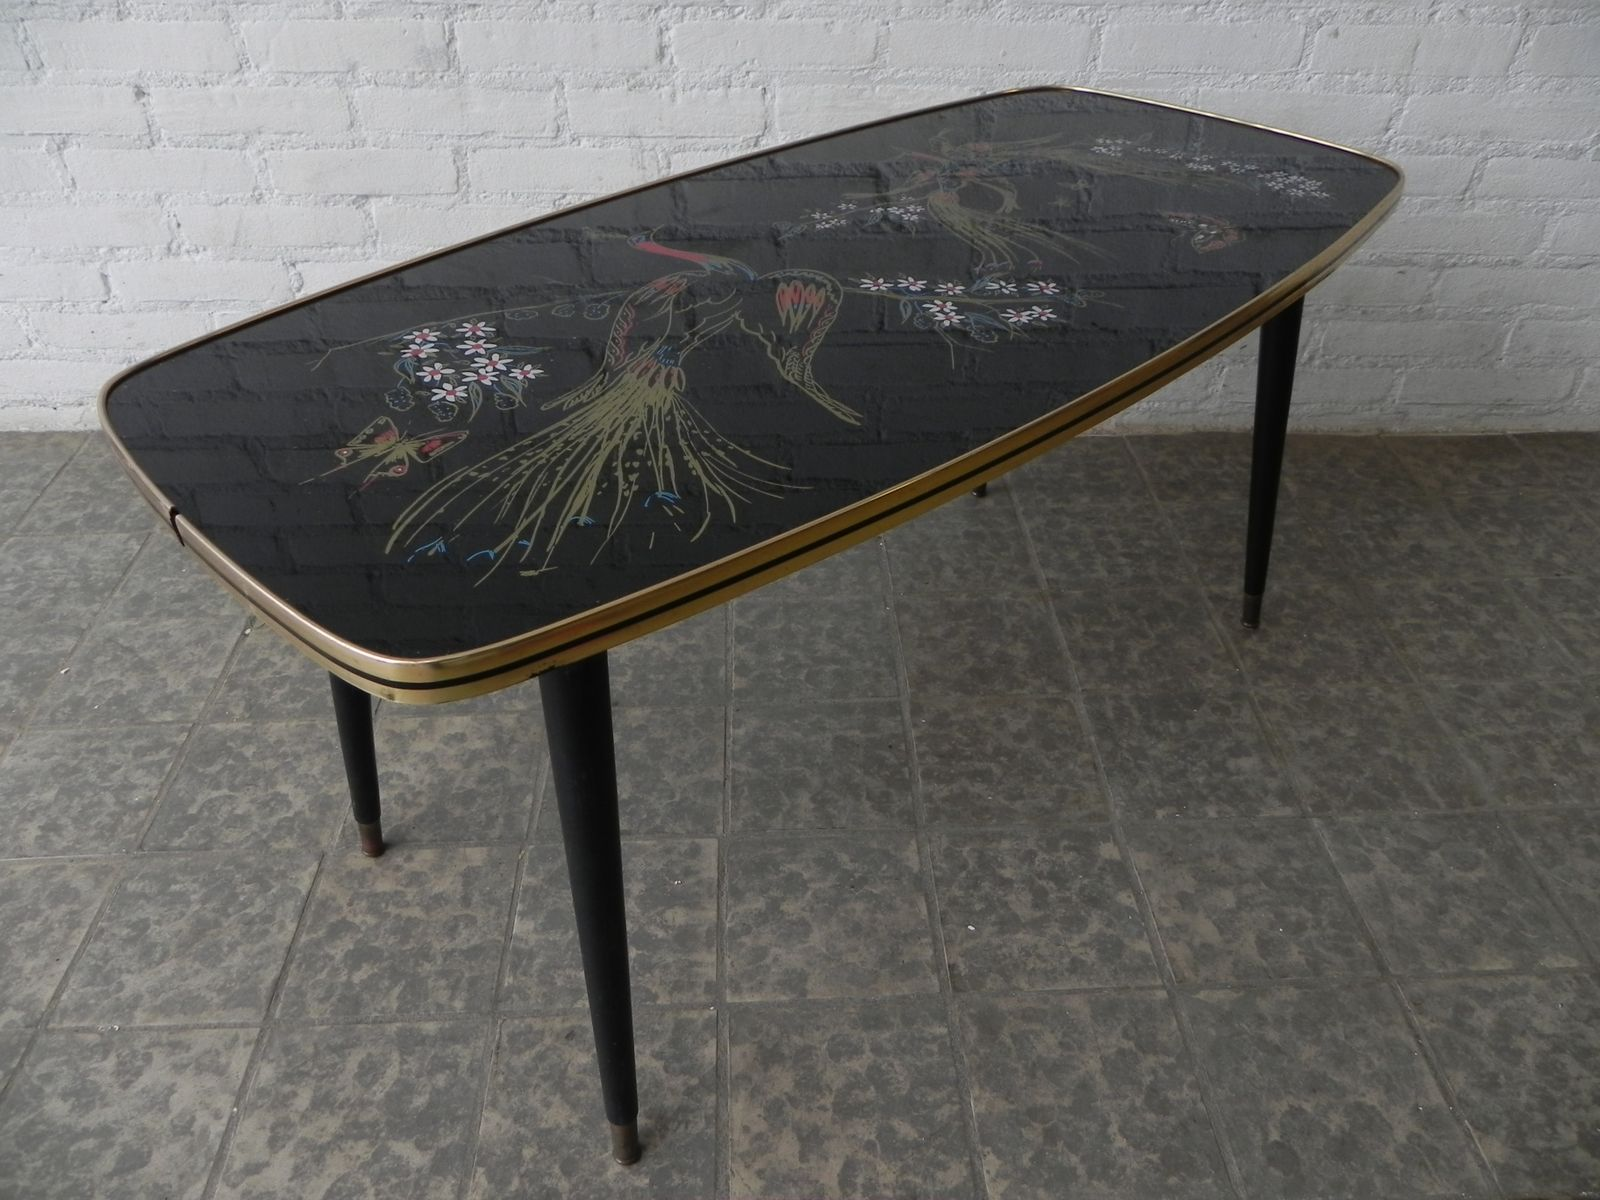 table basse vintage avec plateau en verre 1950s en vente sur pamono. Black Bedroom Furniture Sets. Home Design Ideas